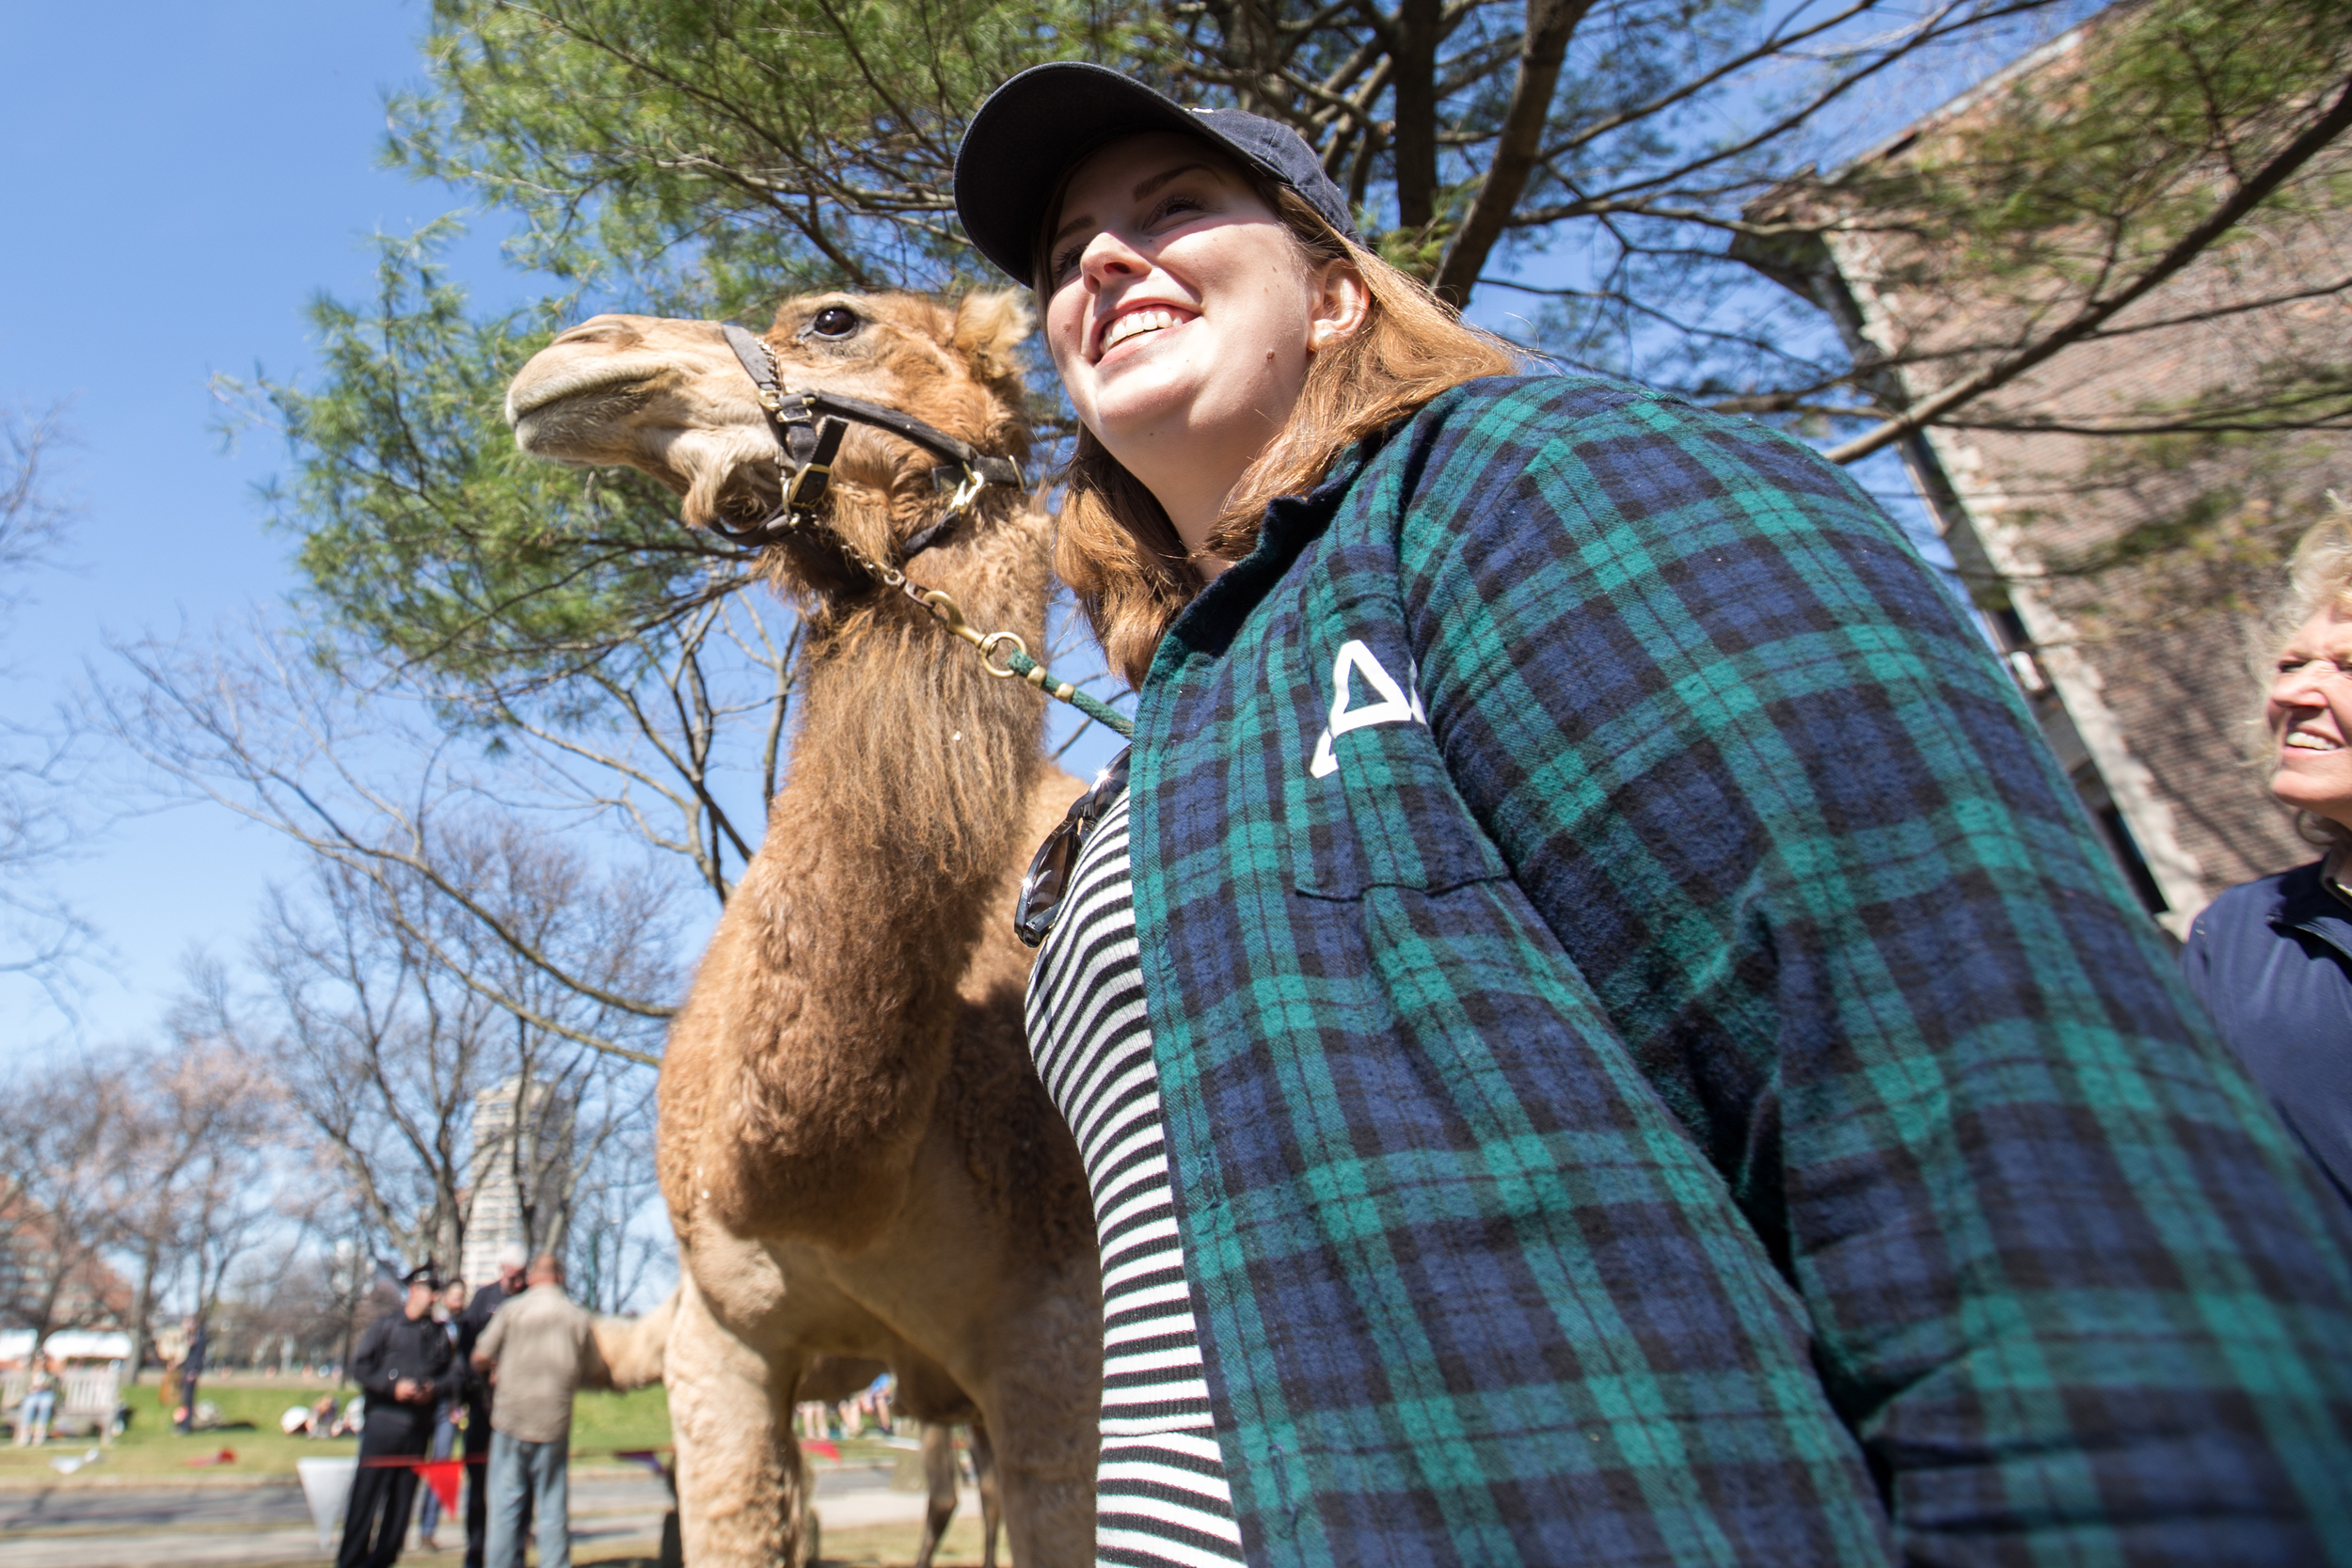 A students poses for a photo with a camel.